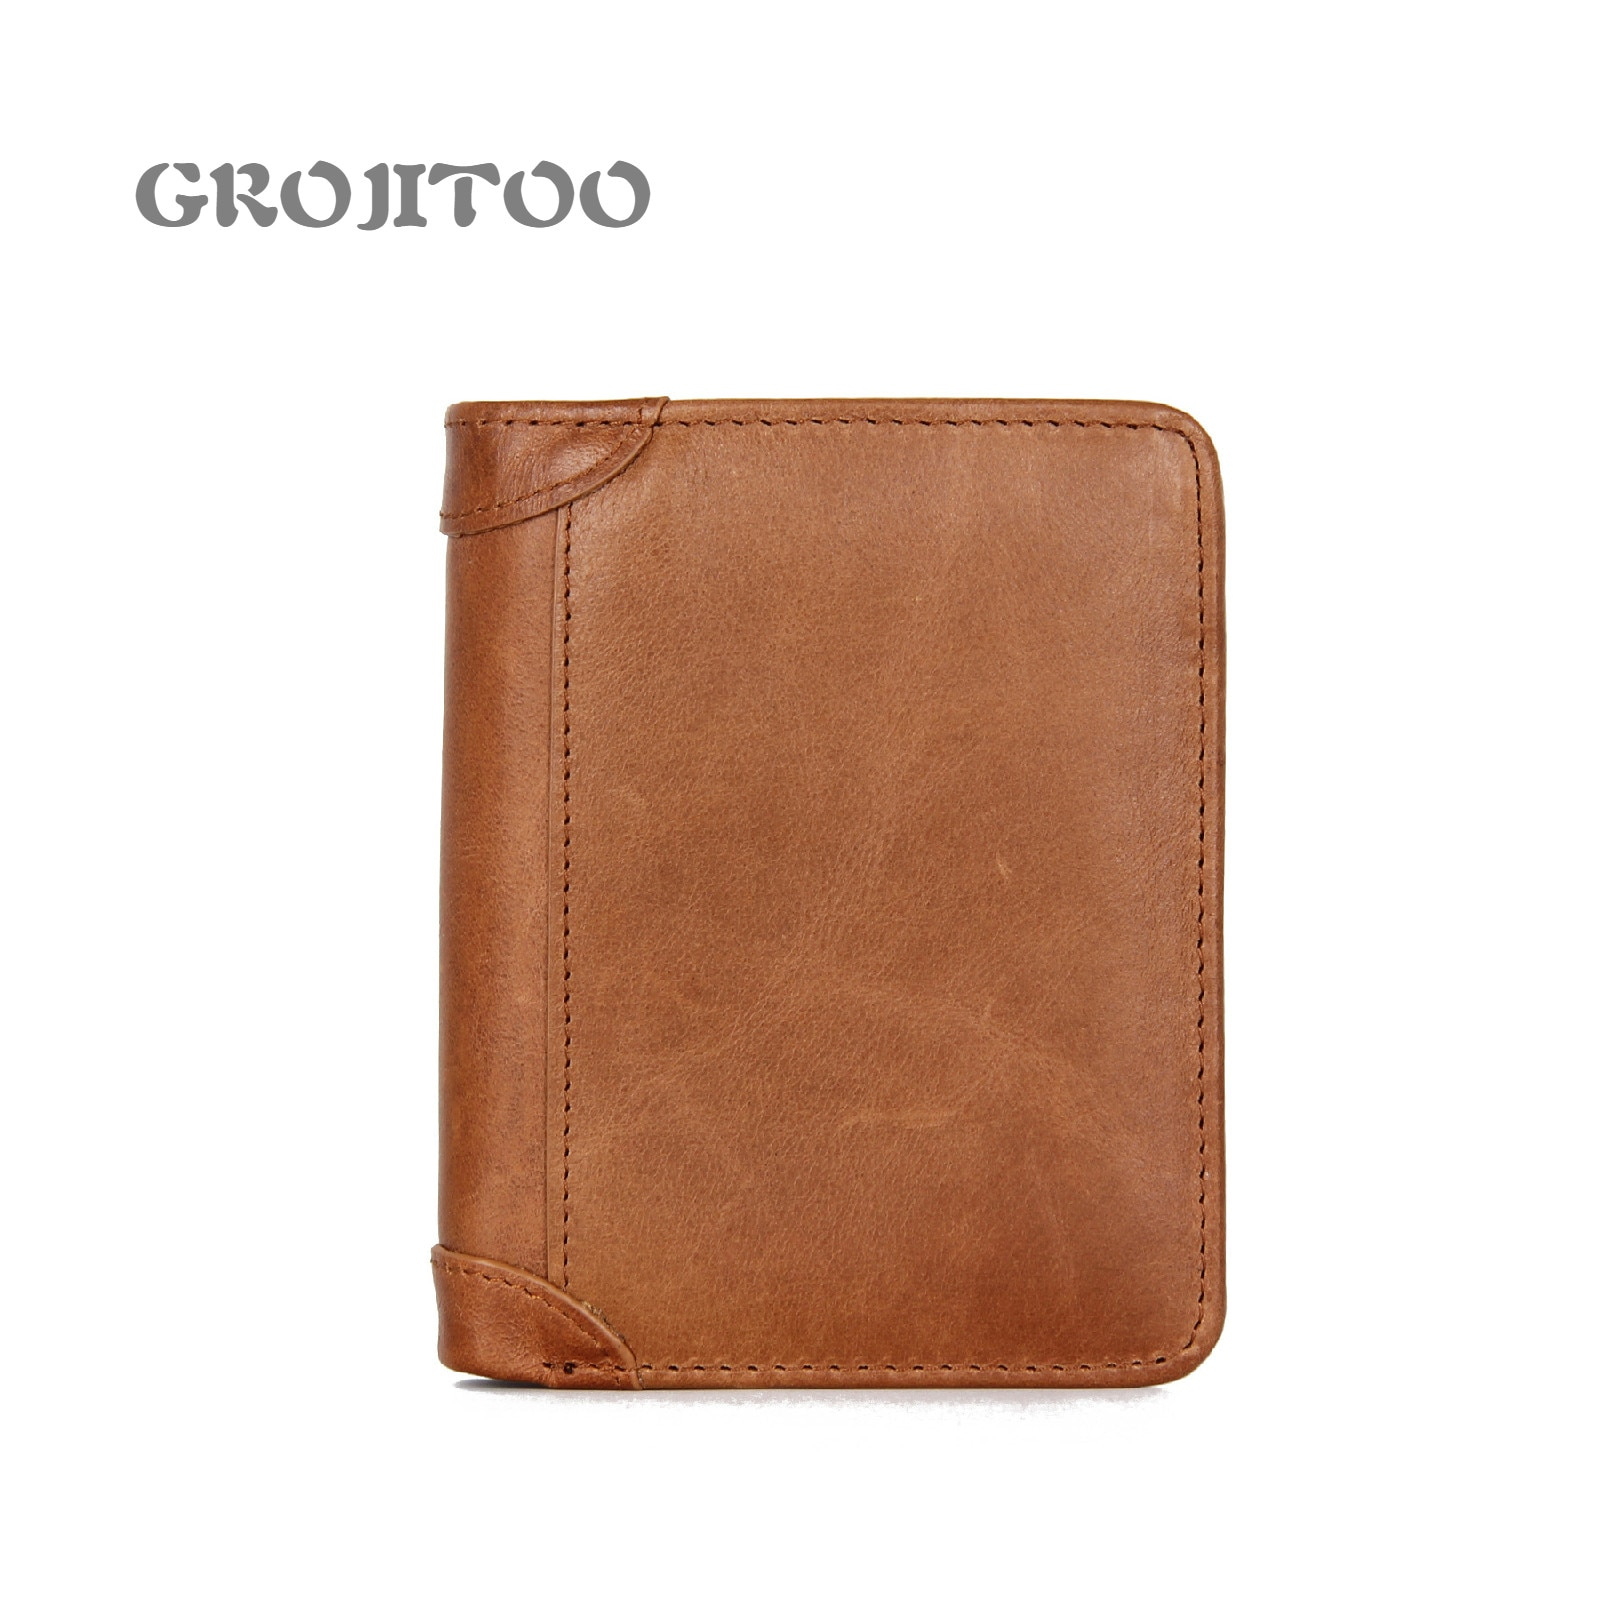 GROJITOO Men's wallet genuine leather Crazy Horse leather men's wallet anti-theft brush men's wallet